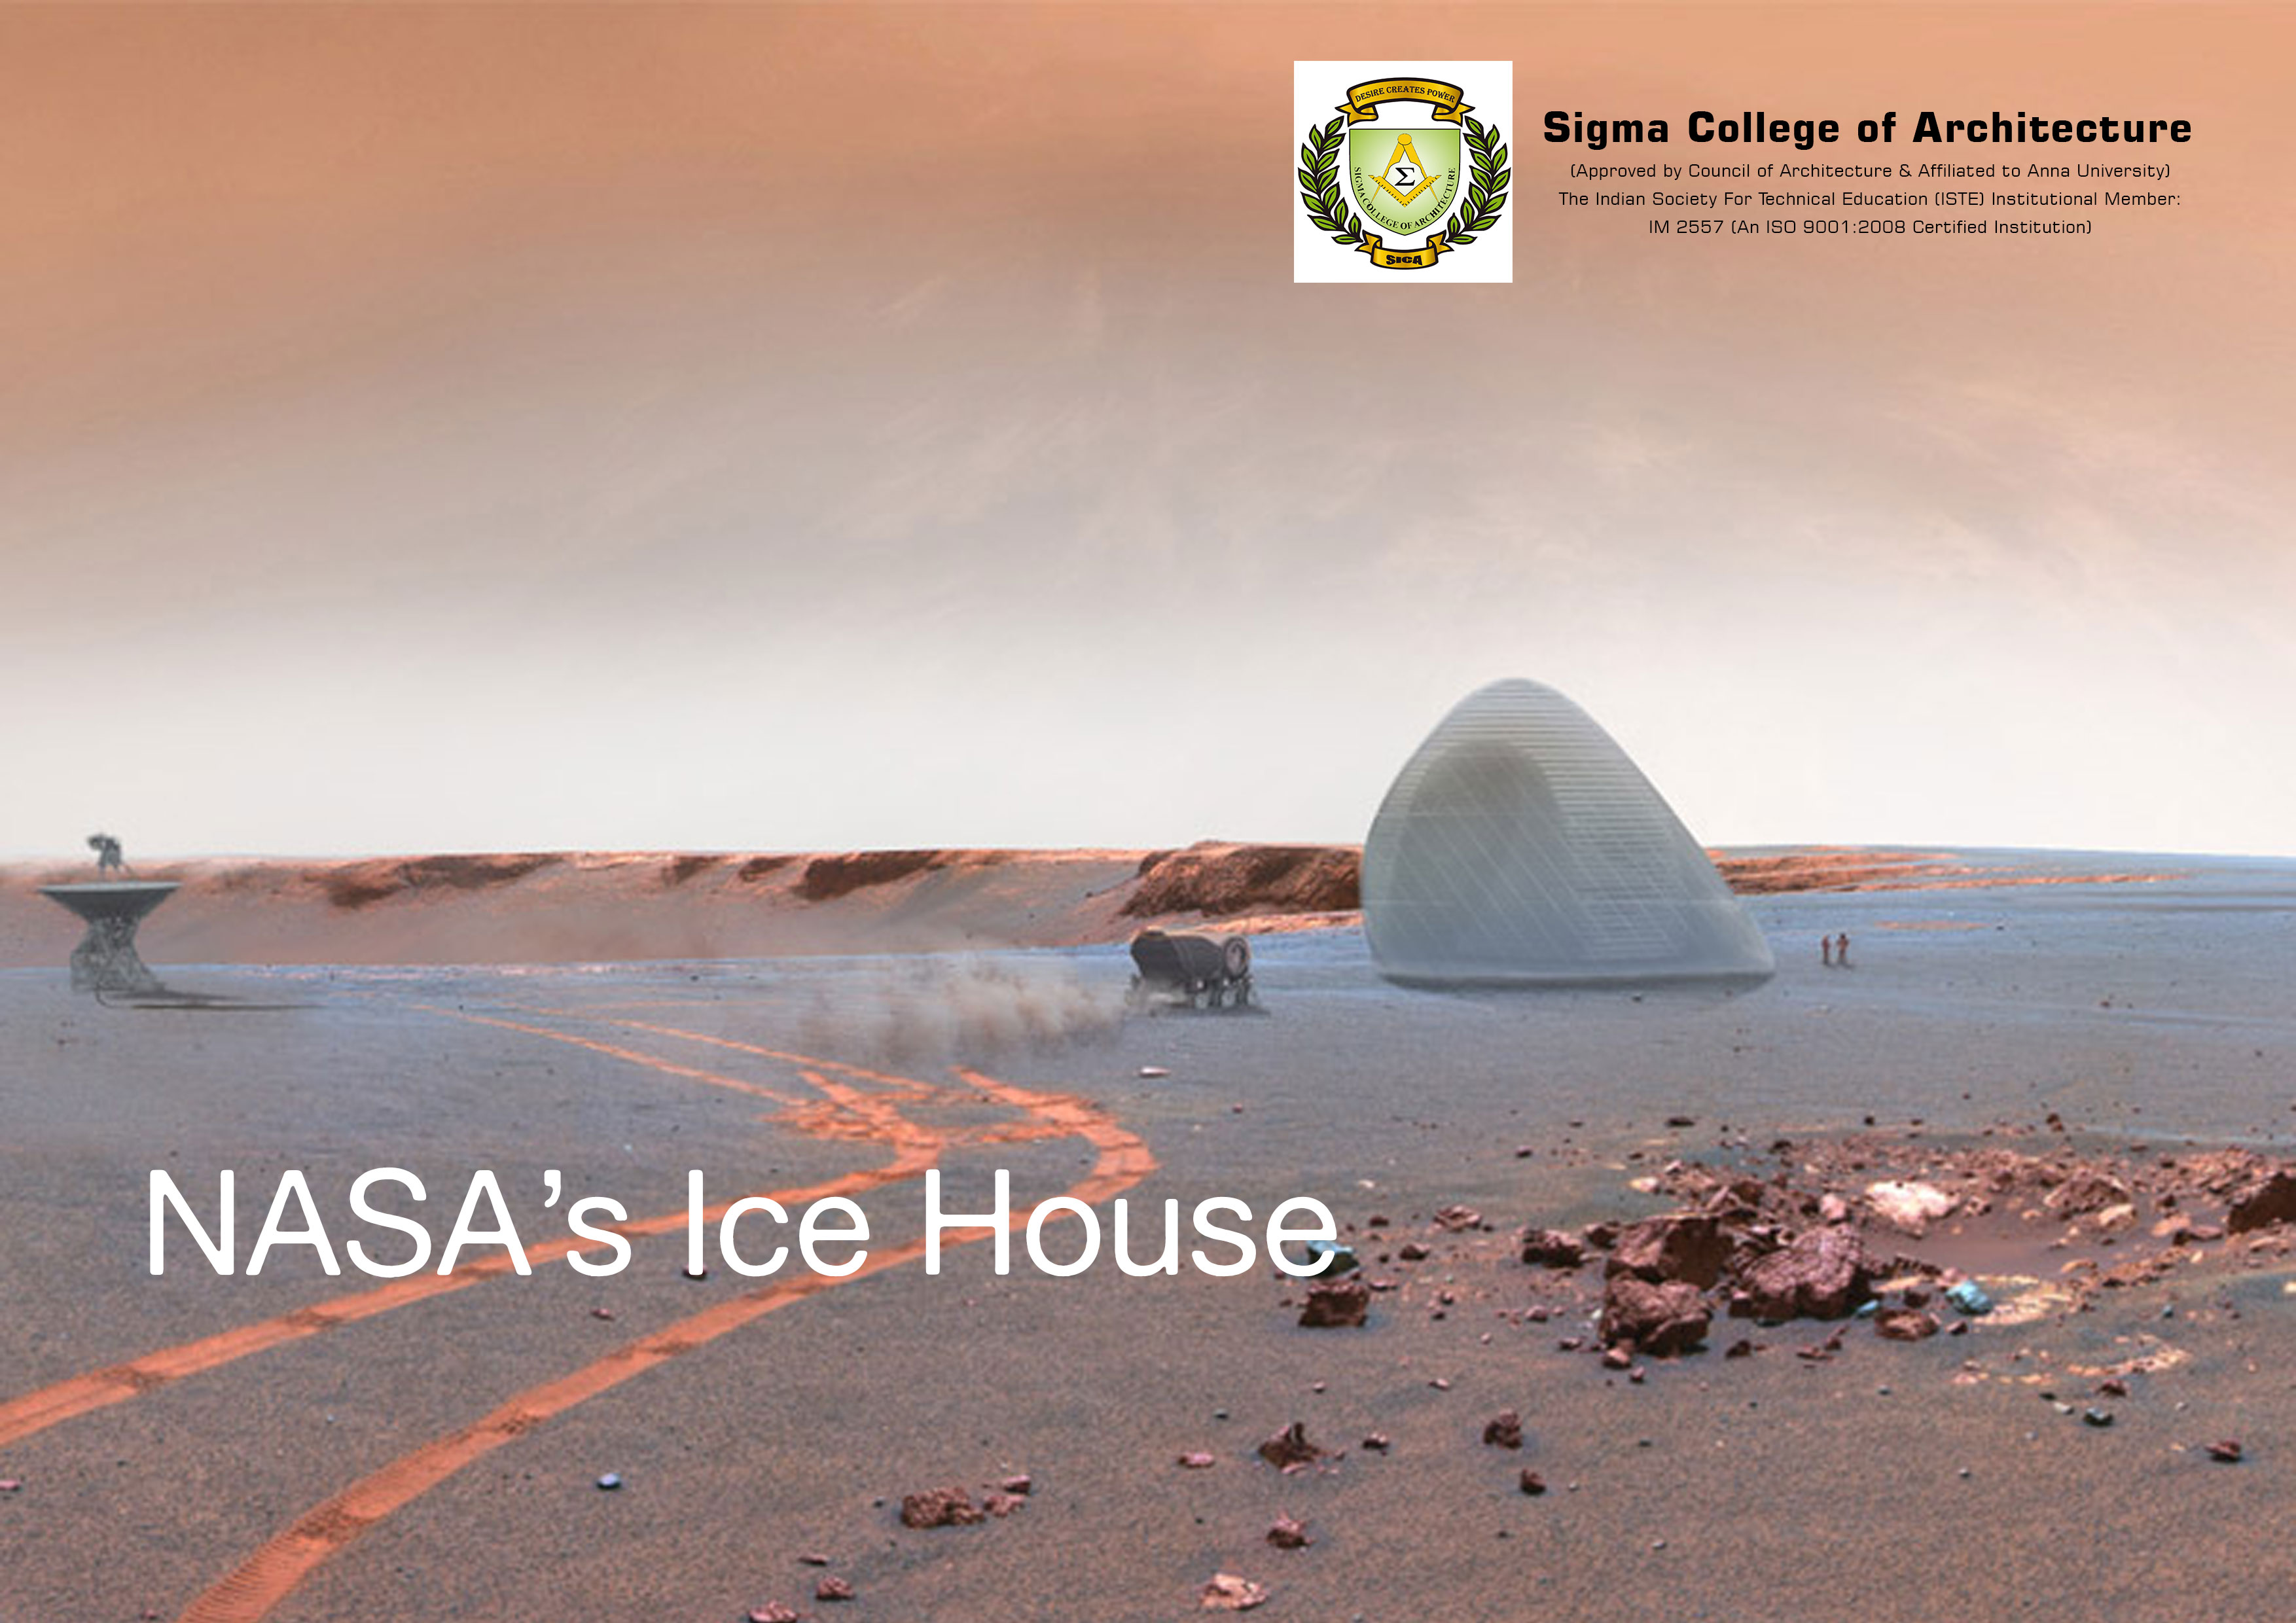 NASA's Ice House